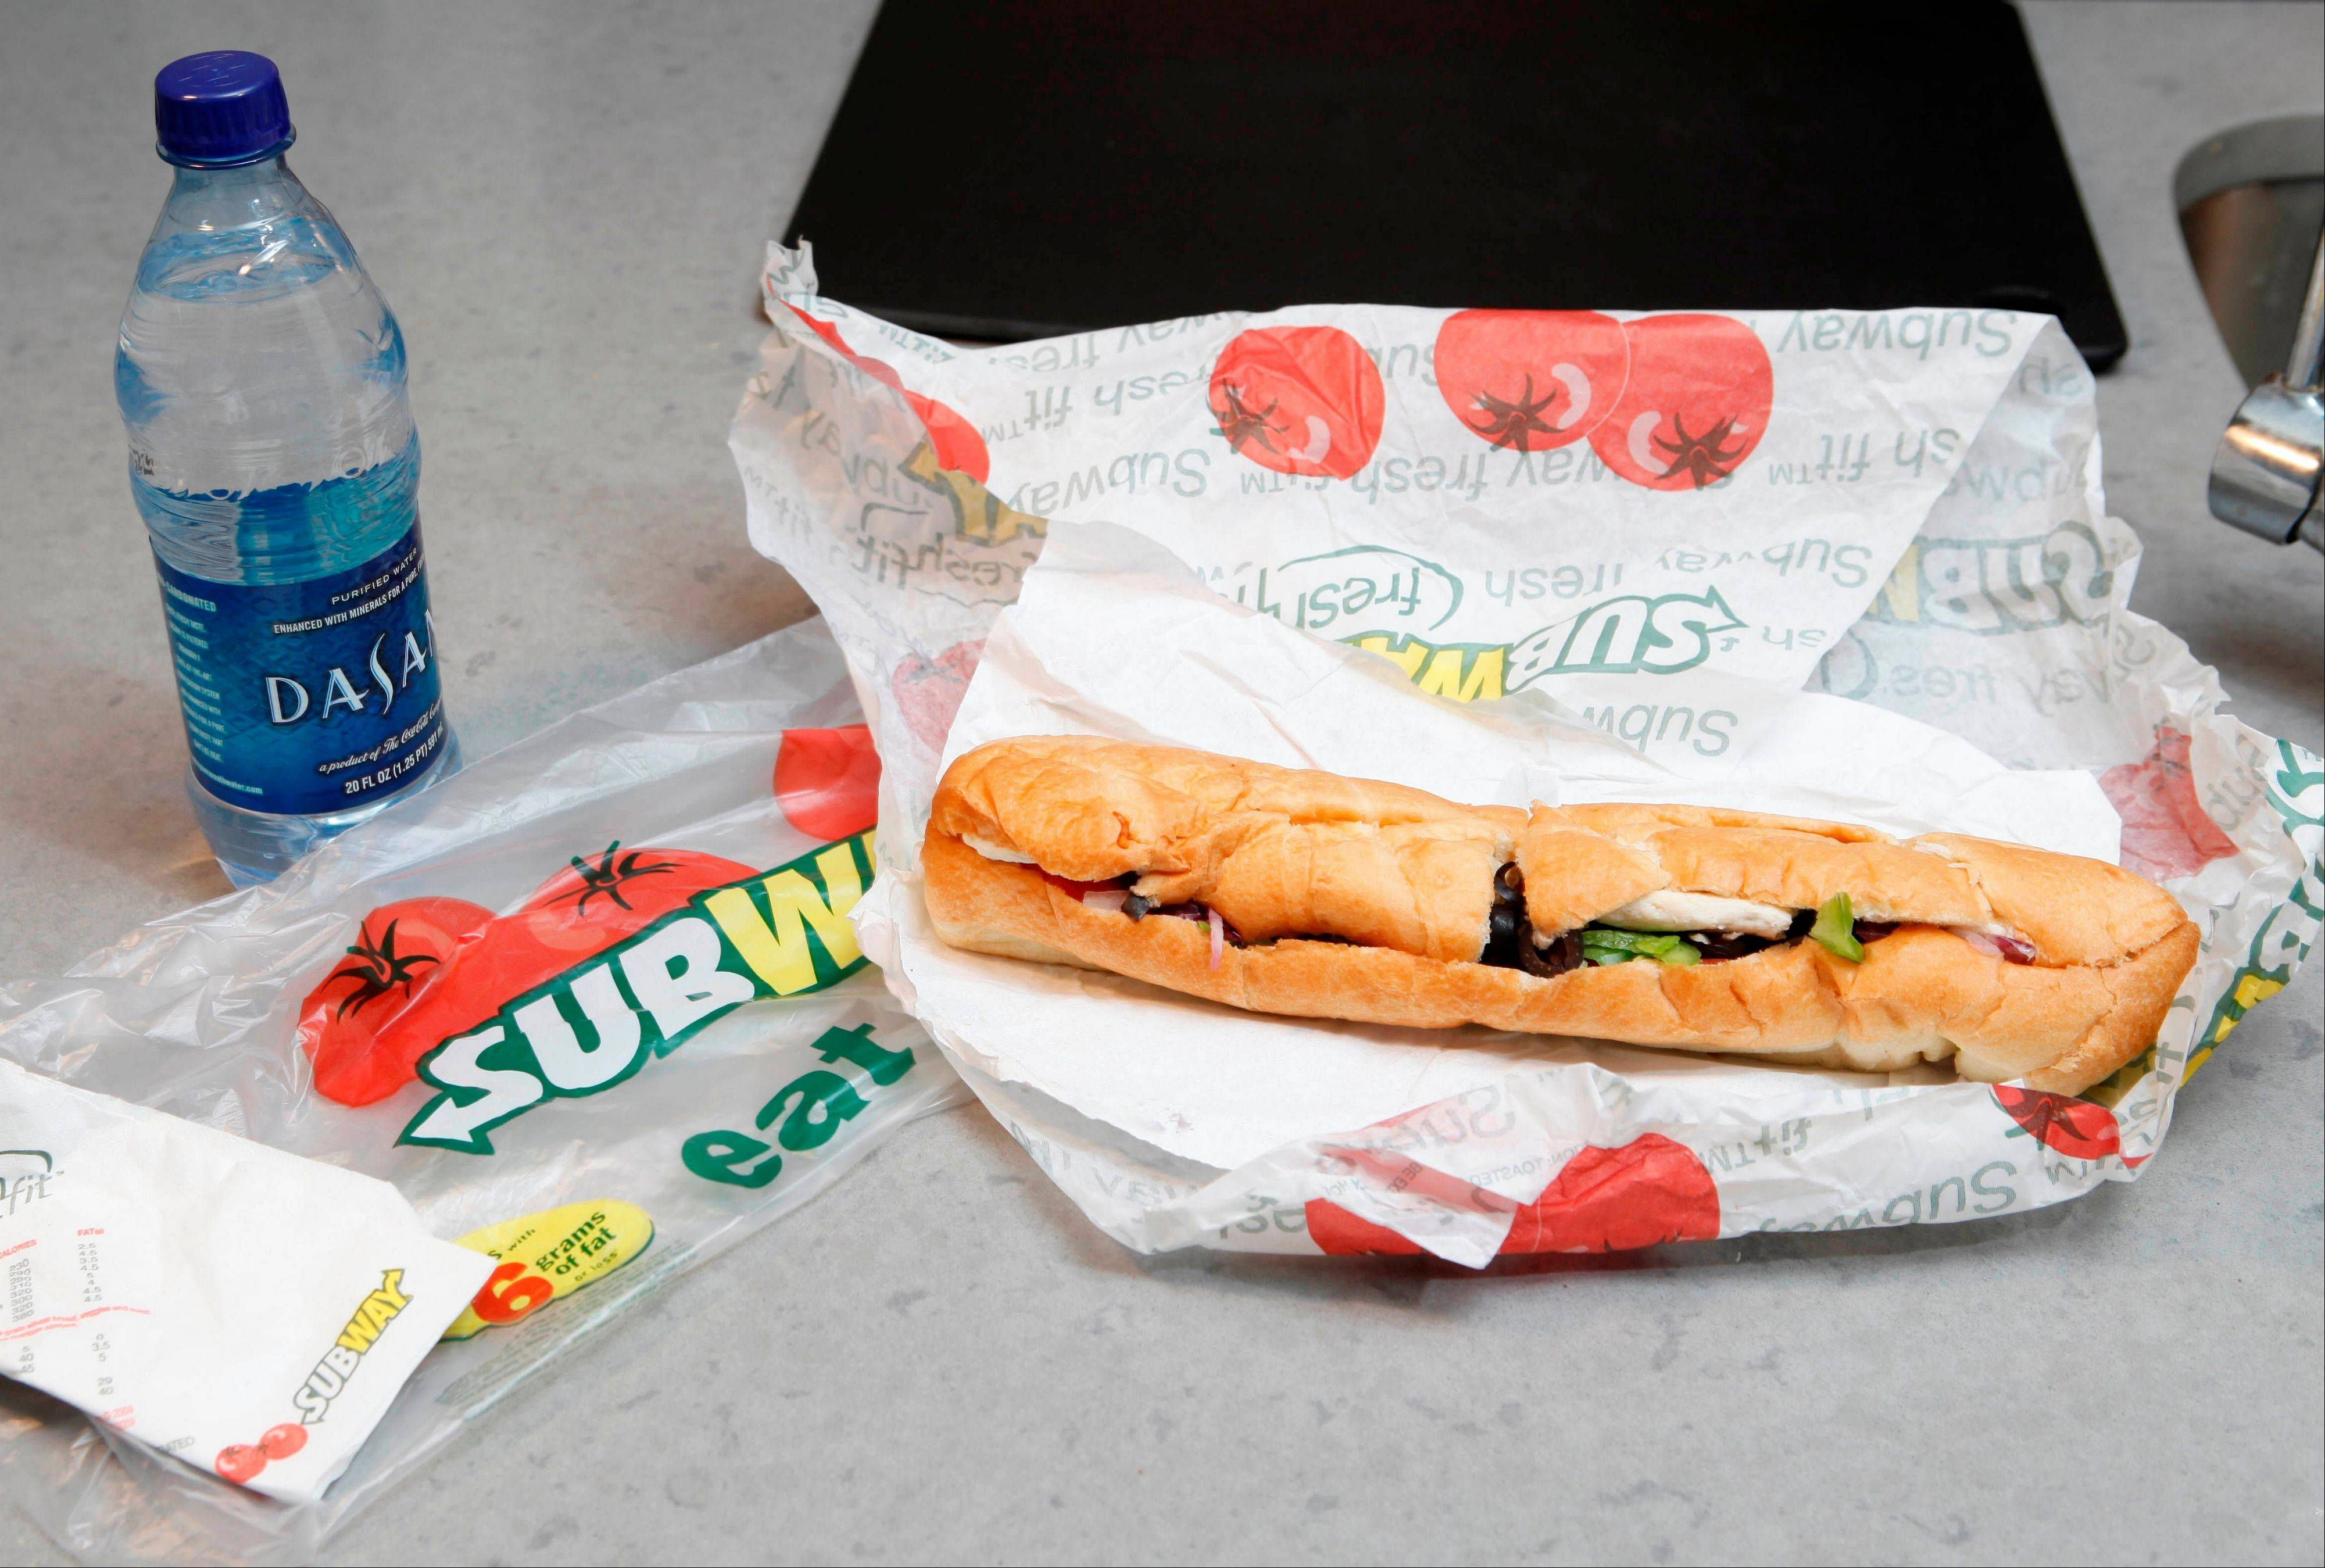 Subway, the world's largest fast food chain, is facing criticism after an Australian man posted a picture on the company's Facebook page on Jan. 16 of one of its famous sandwiches next to a tape measure that seems to shows it's not as long as promised. Now Subway is being sued by two men in New Jersey over the issue.